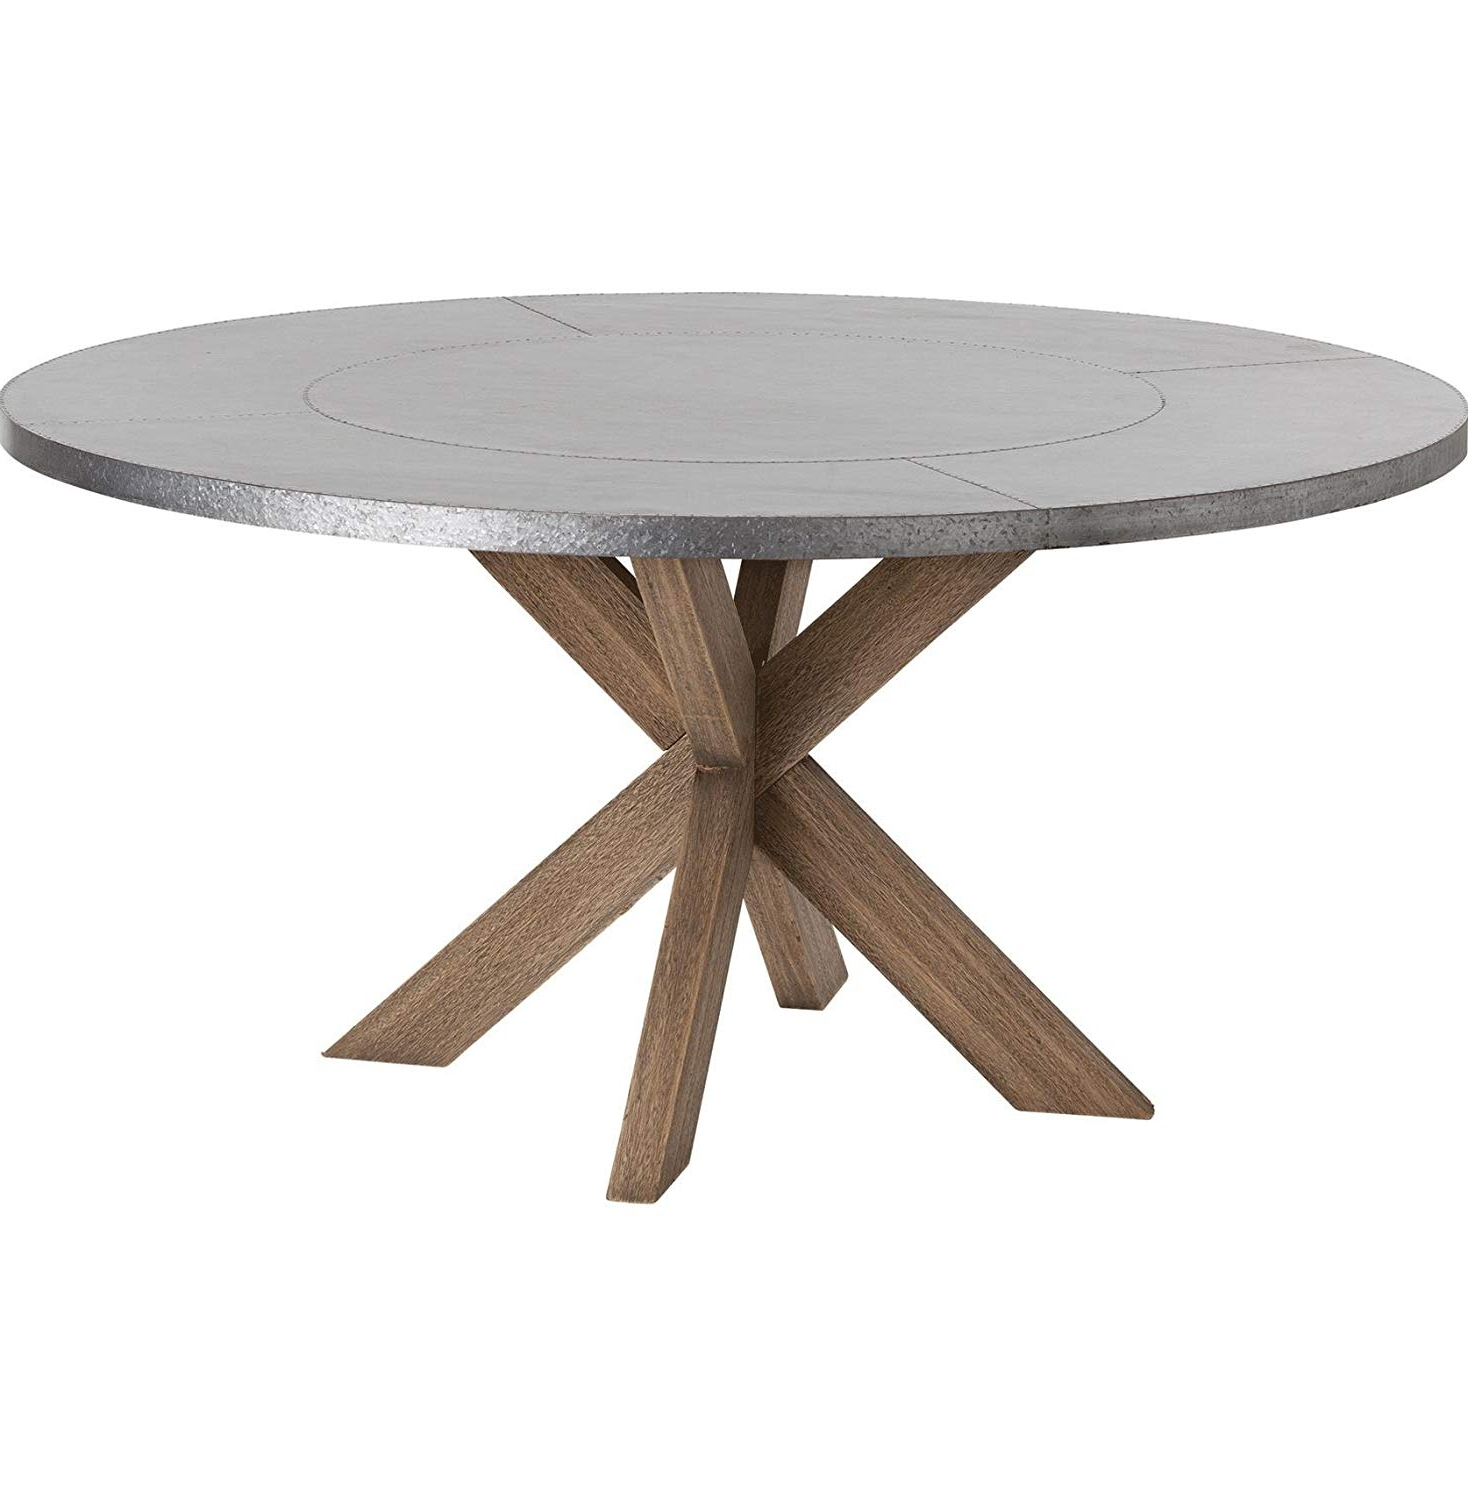 Natural Wood & Recycled Elm 87 Inch Dining Tables Regarding Most Popular Amazon – Kathy Kuo Home Halton Industrial Loft Galvanized Iron (Gallery 25 of 25)